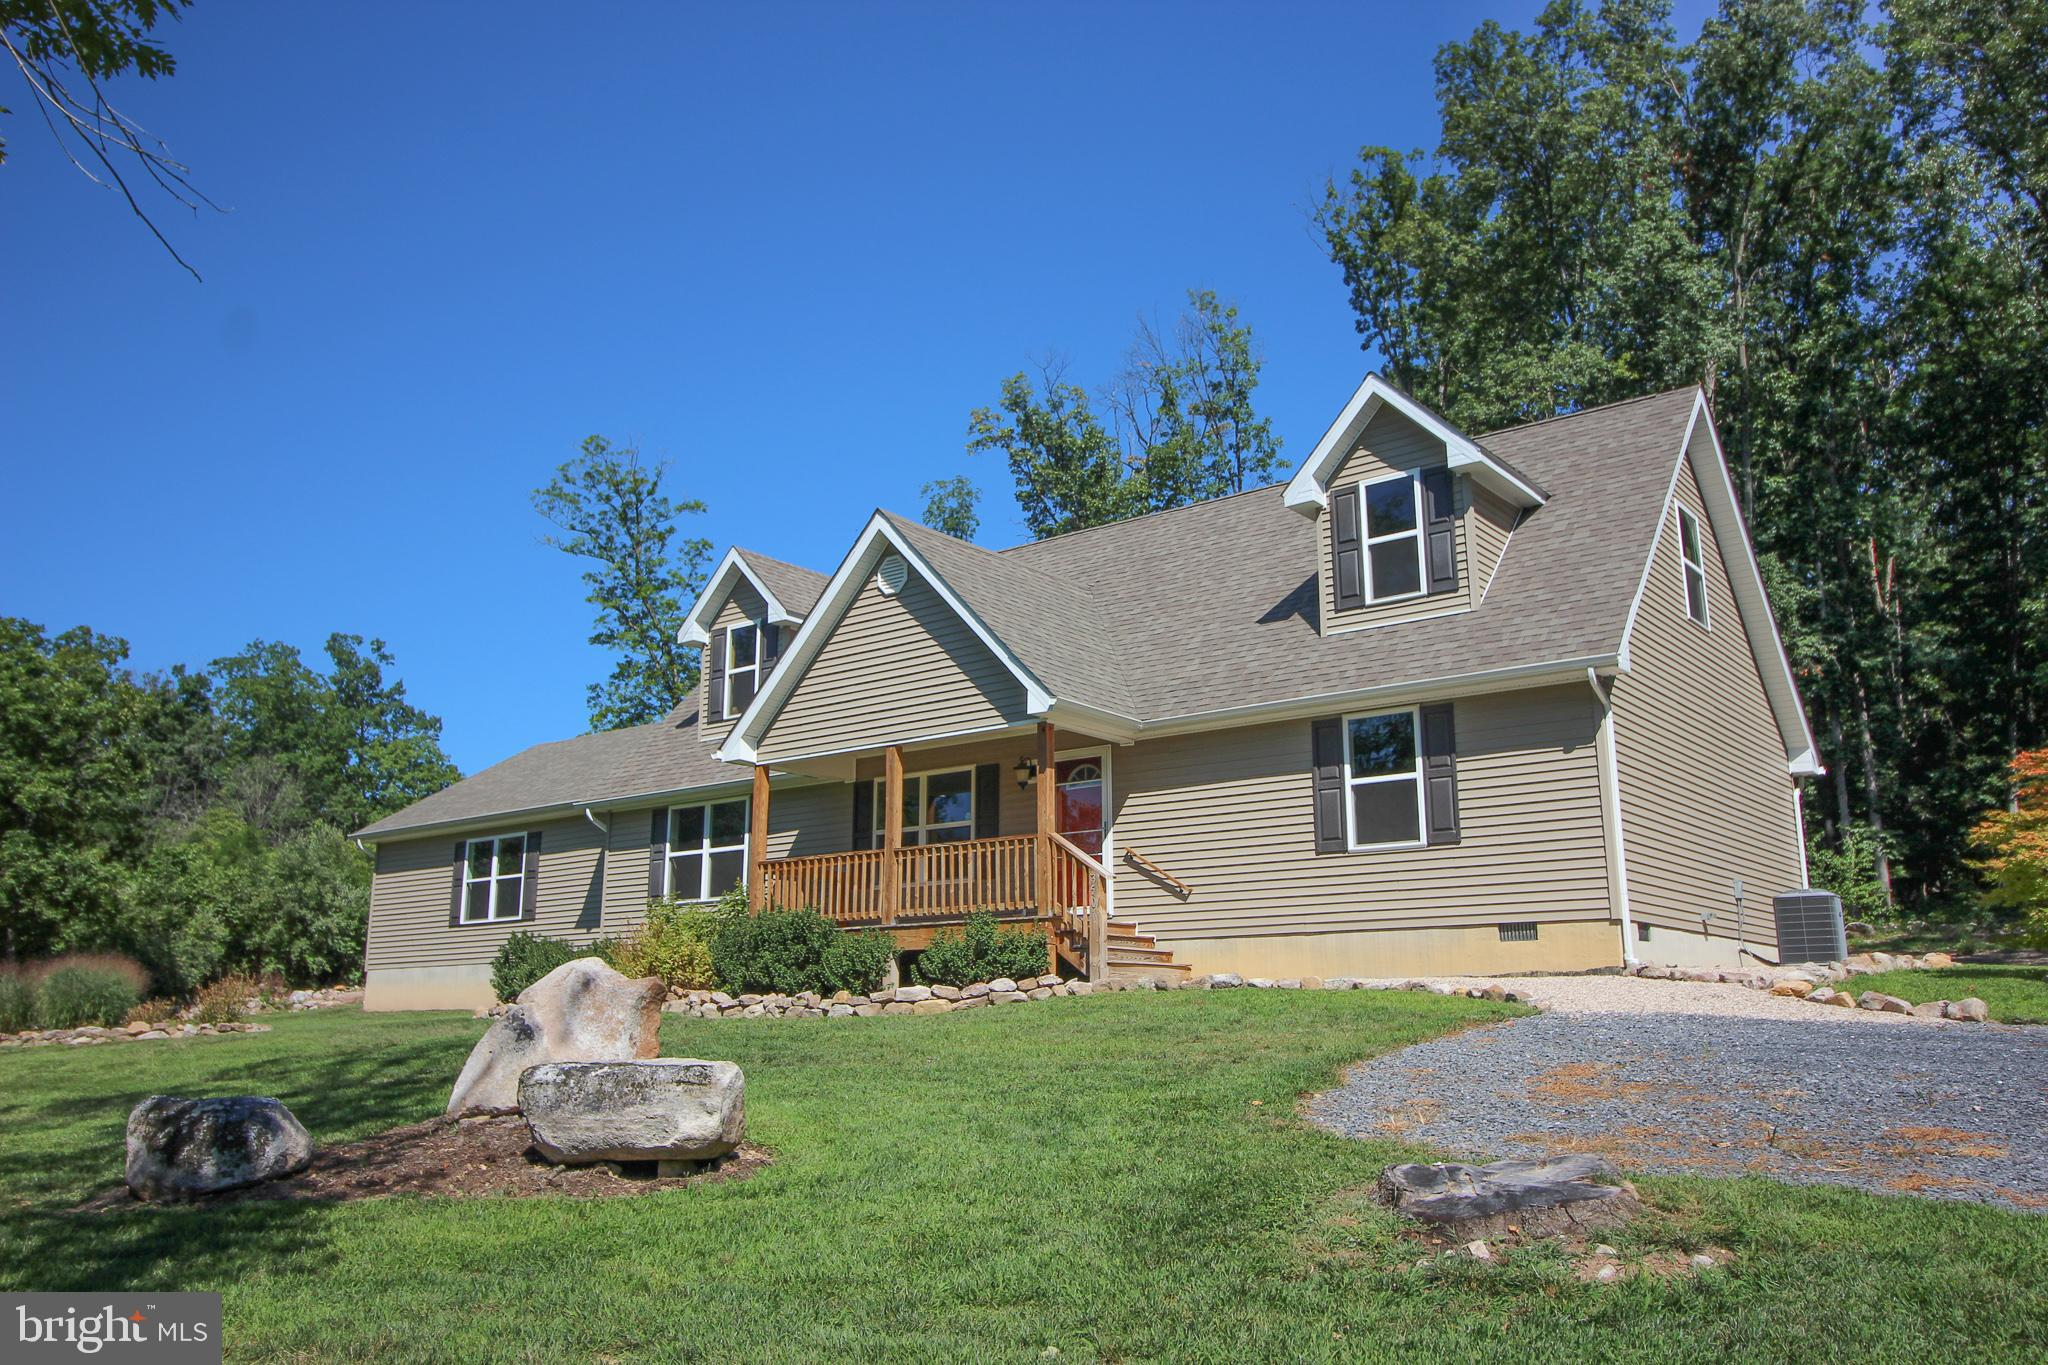 3501 ALONZAVILLE ROAD, MAURERTOWN, VA 22644